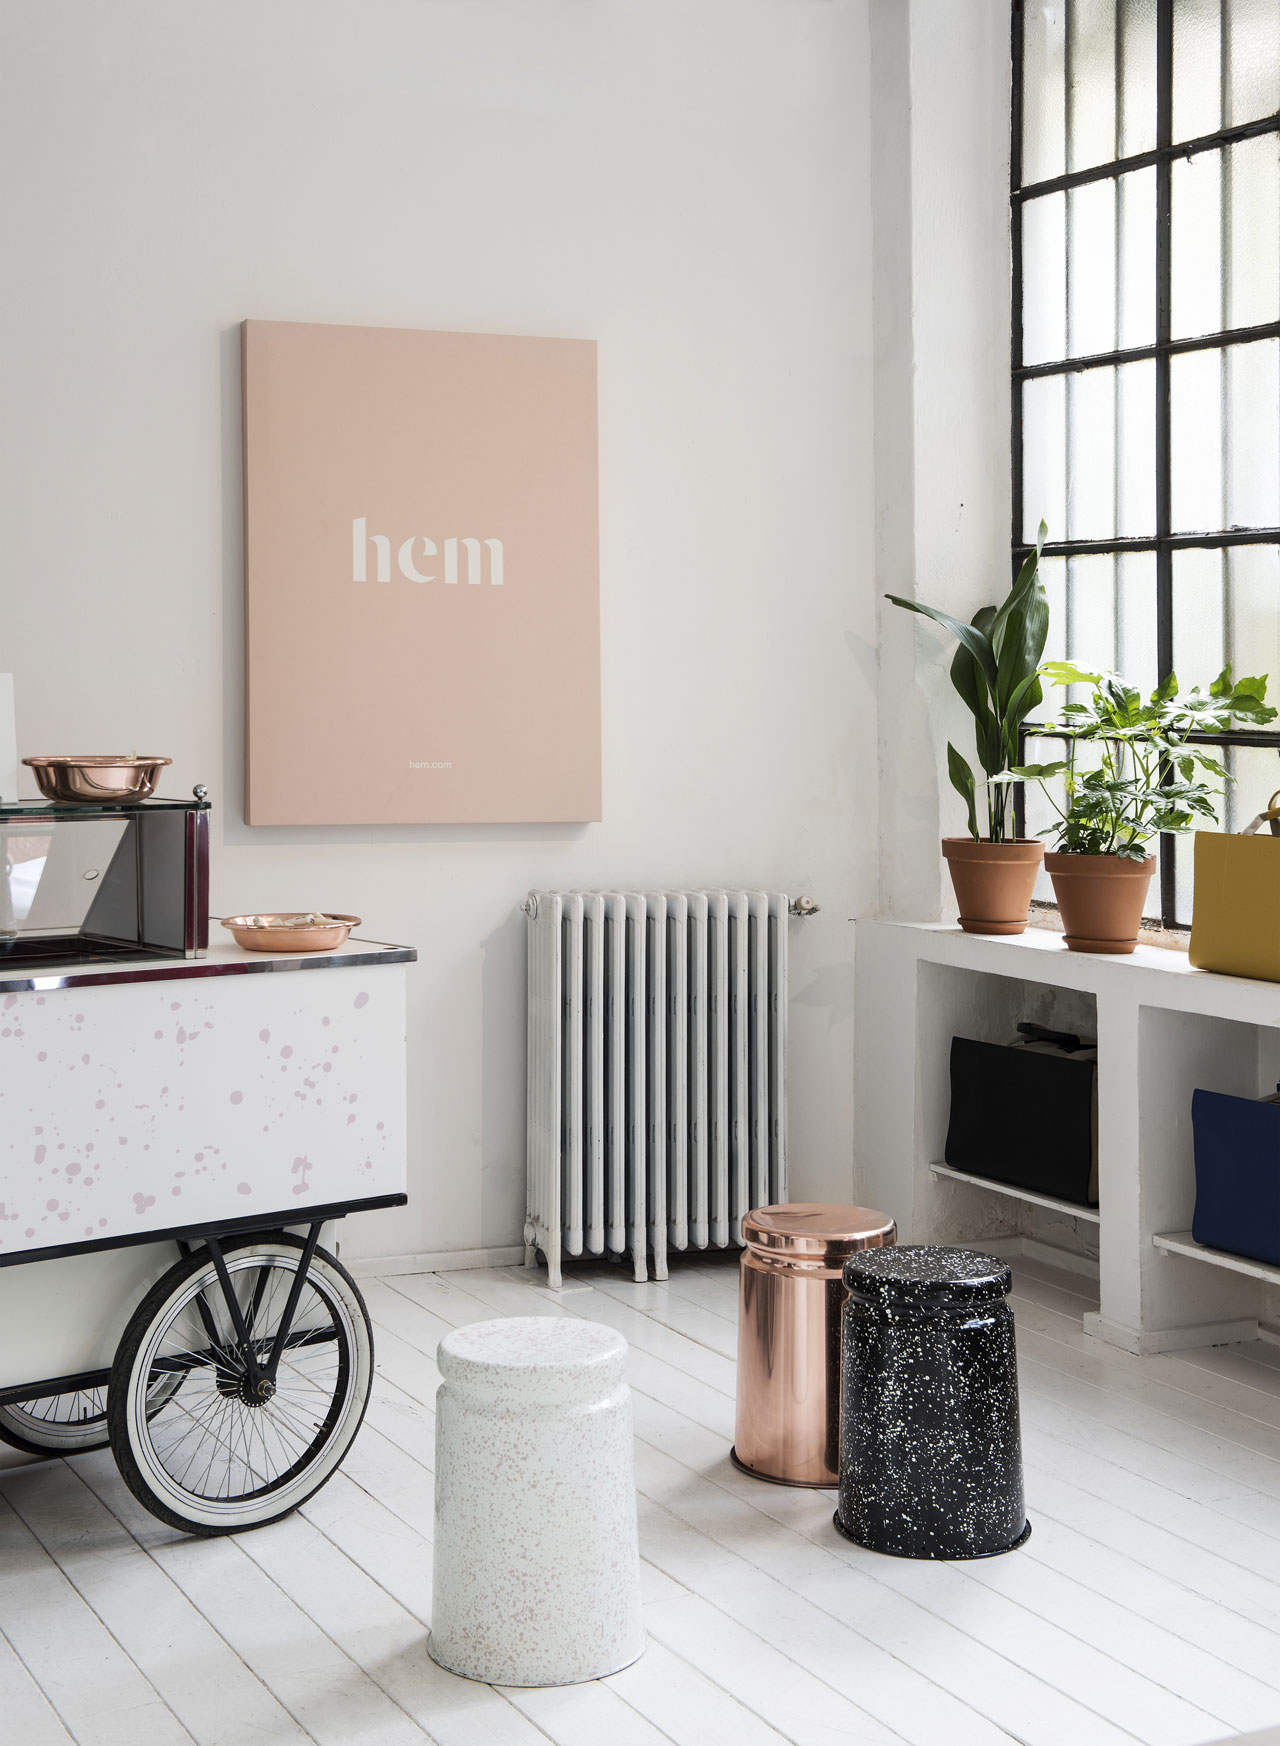 """Hem's products launchin Milan this year celebrated the Italian tradition of gathering... """"Ice Cream Social"""" installation preview inspired by gathering, sharing and socialising. Photo byErik Lefvander."""